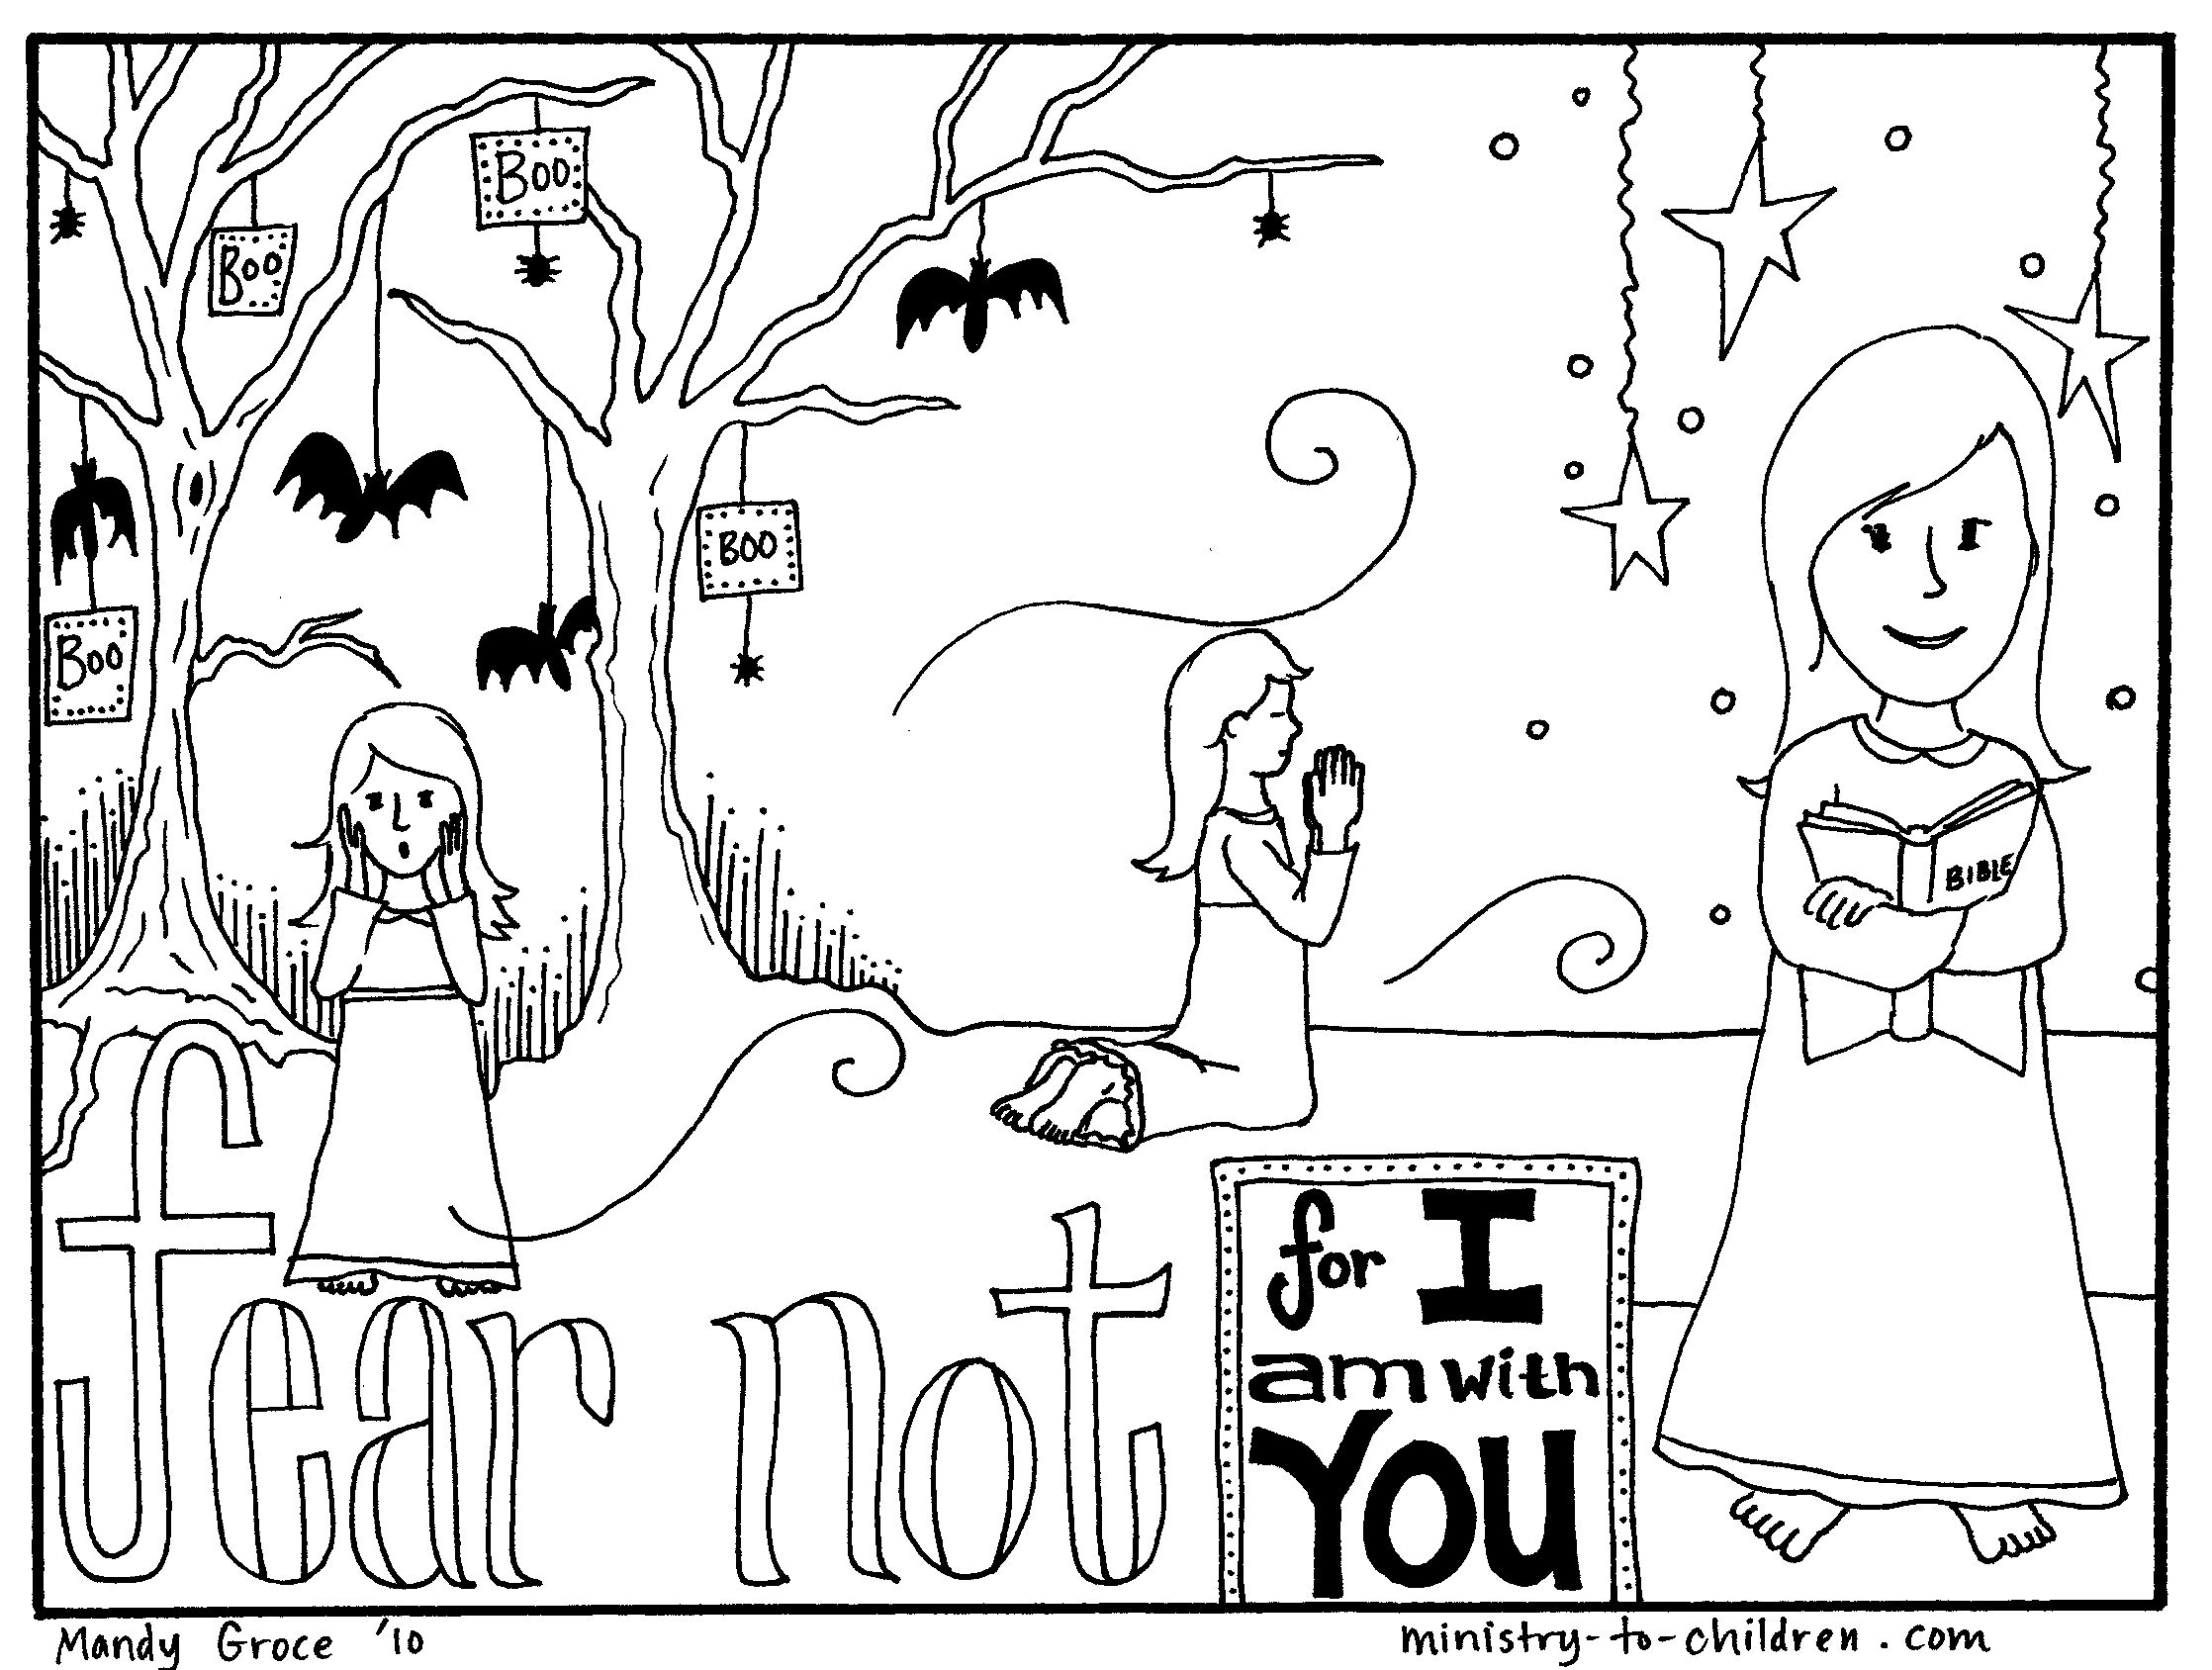 Pin by Ministry-To-Children on trunk or treat decorating